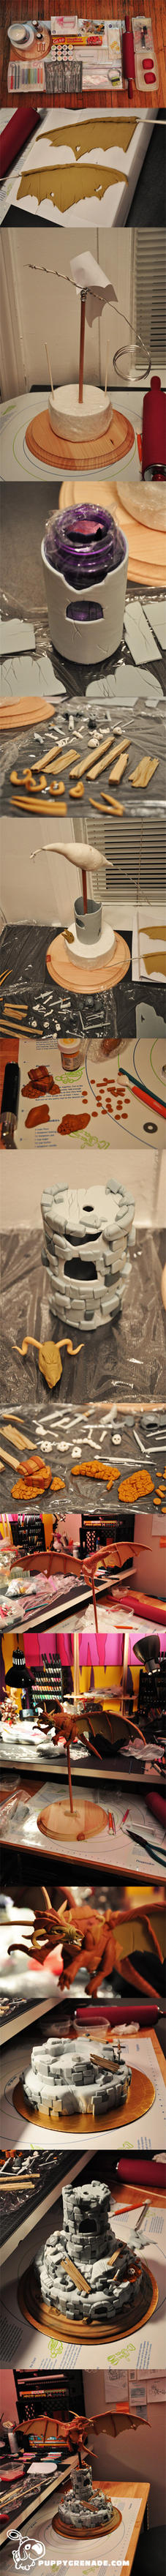 Dragon Tower Cake - Making of by Puppygrenade